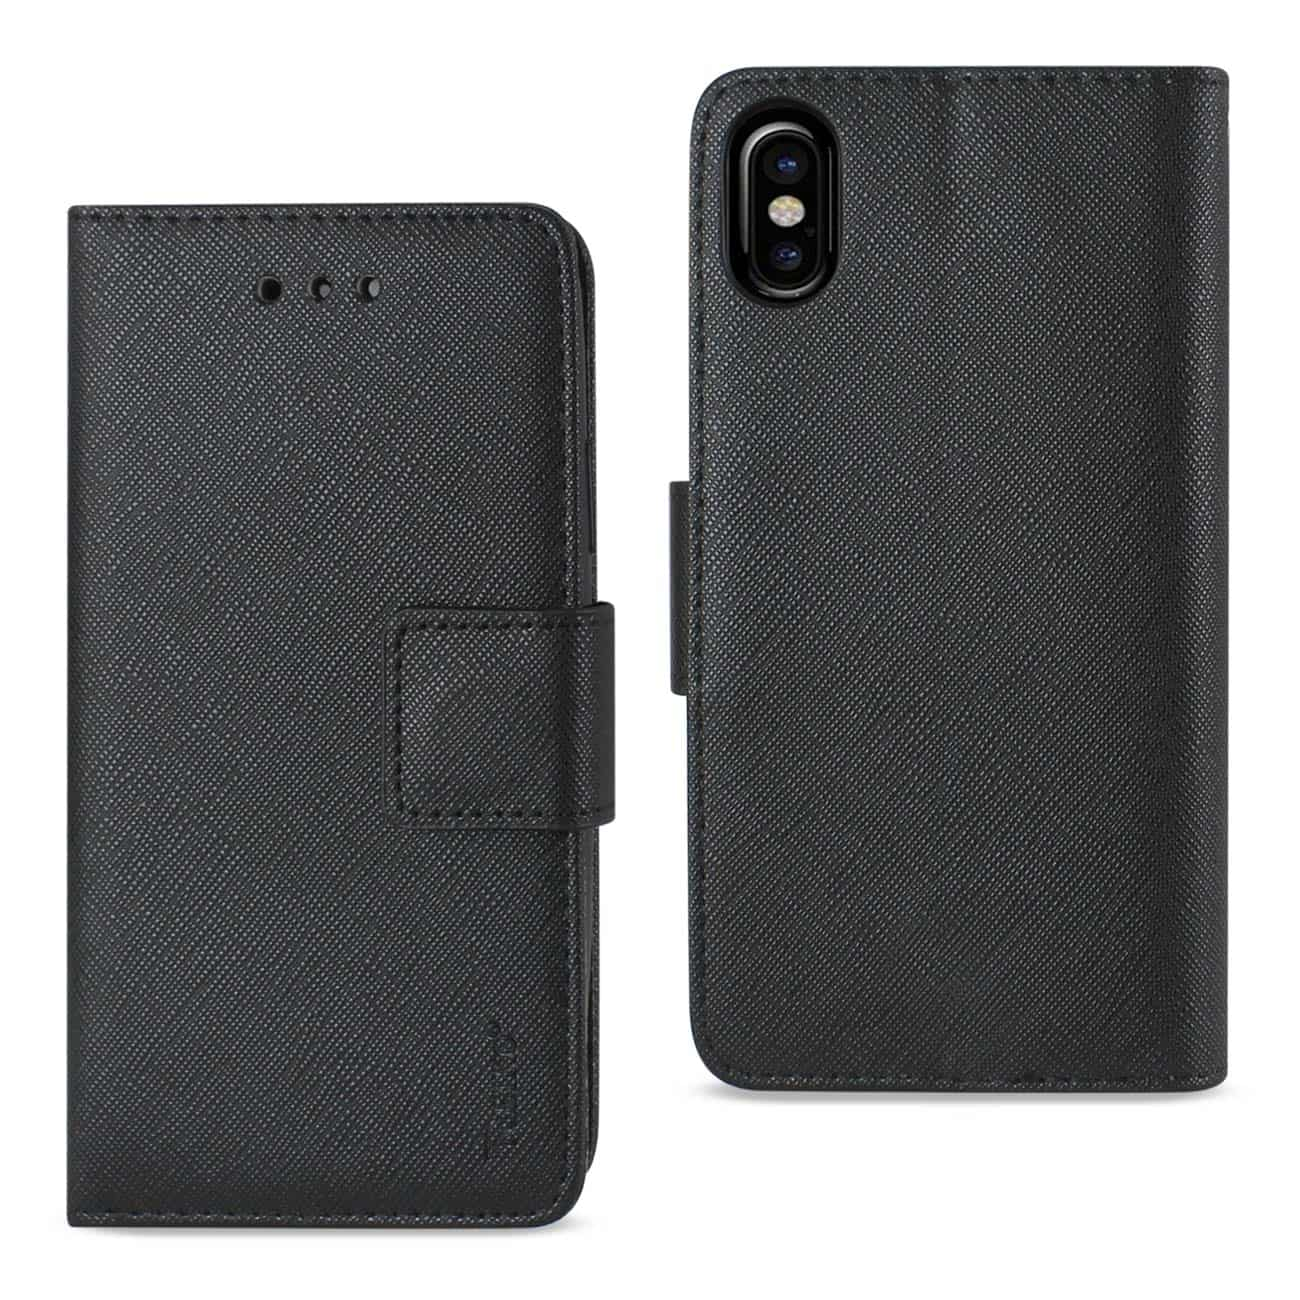 IPHONE X 3-IN-1 WALLET CASE IN BLACK